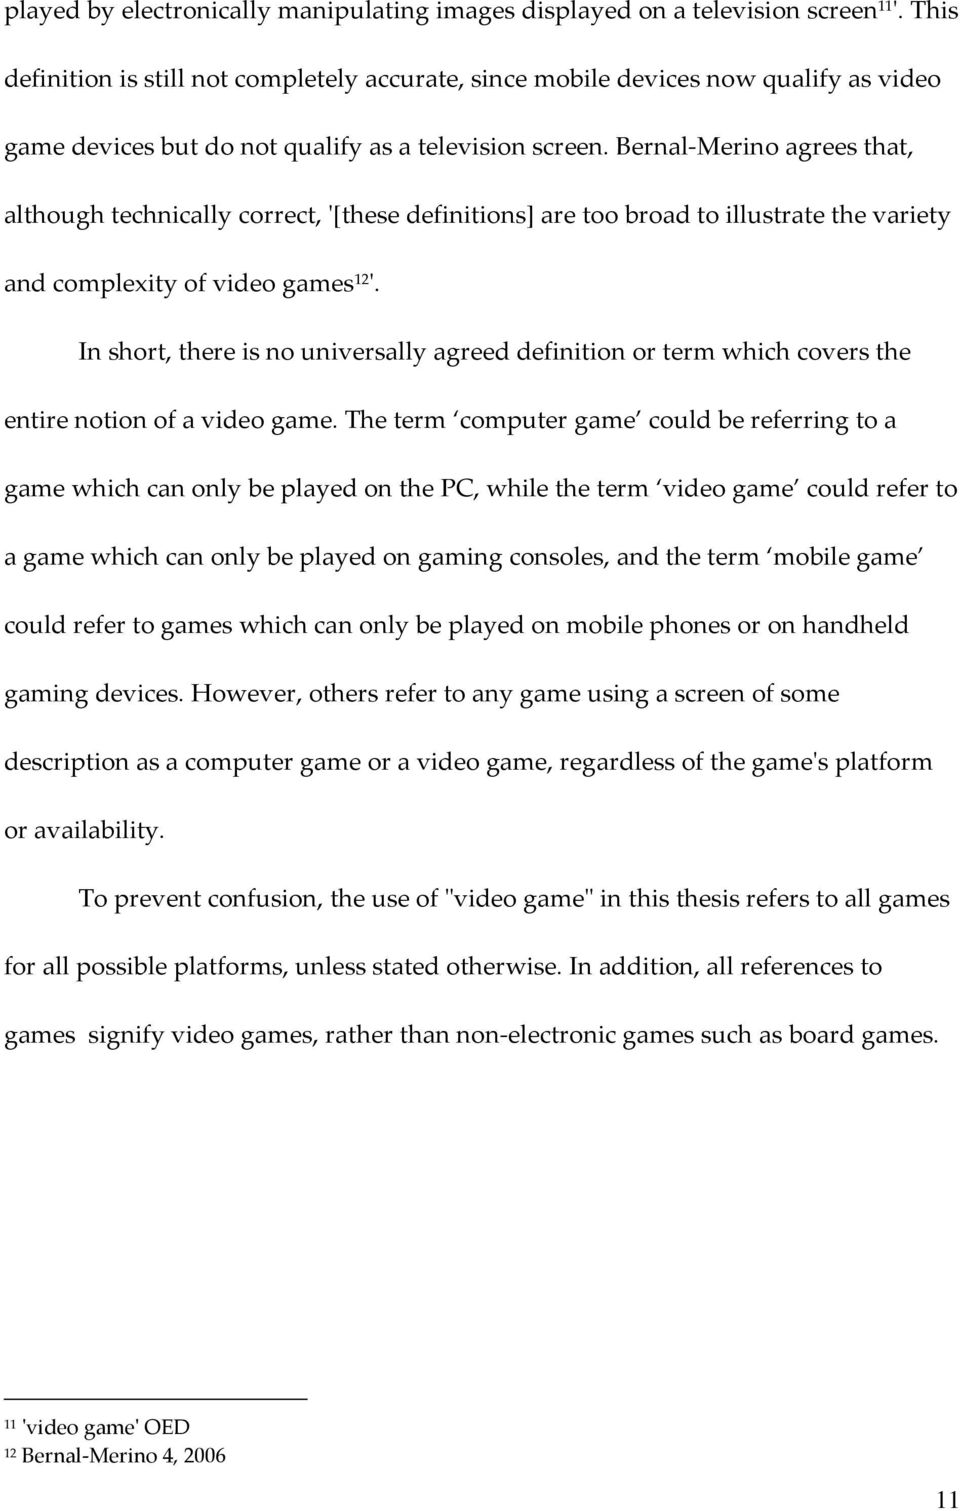 Bernal-Merino agrees that, although technically correct, '[these definitions] are too broad to illustrate the variety and complexity of video games 12 '.